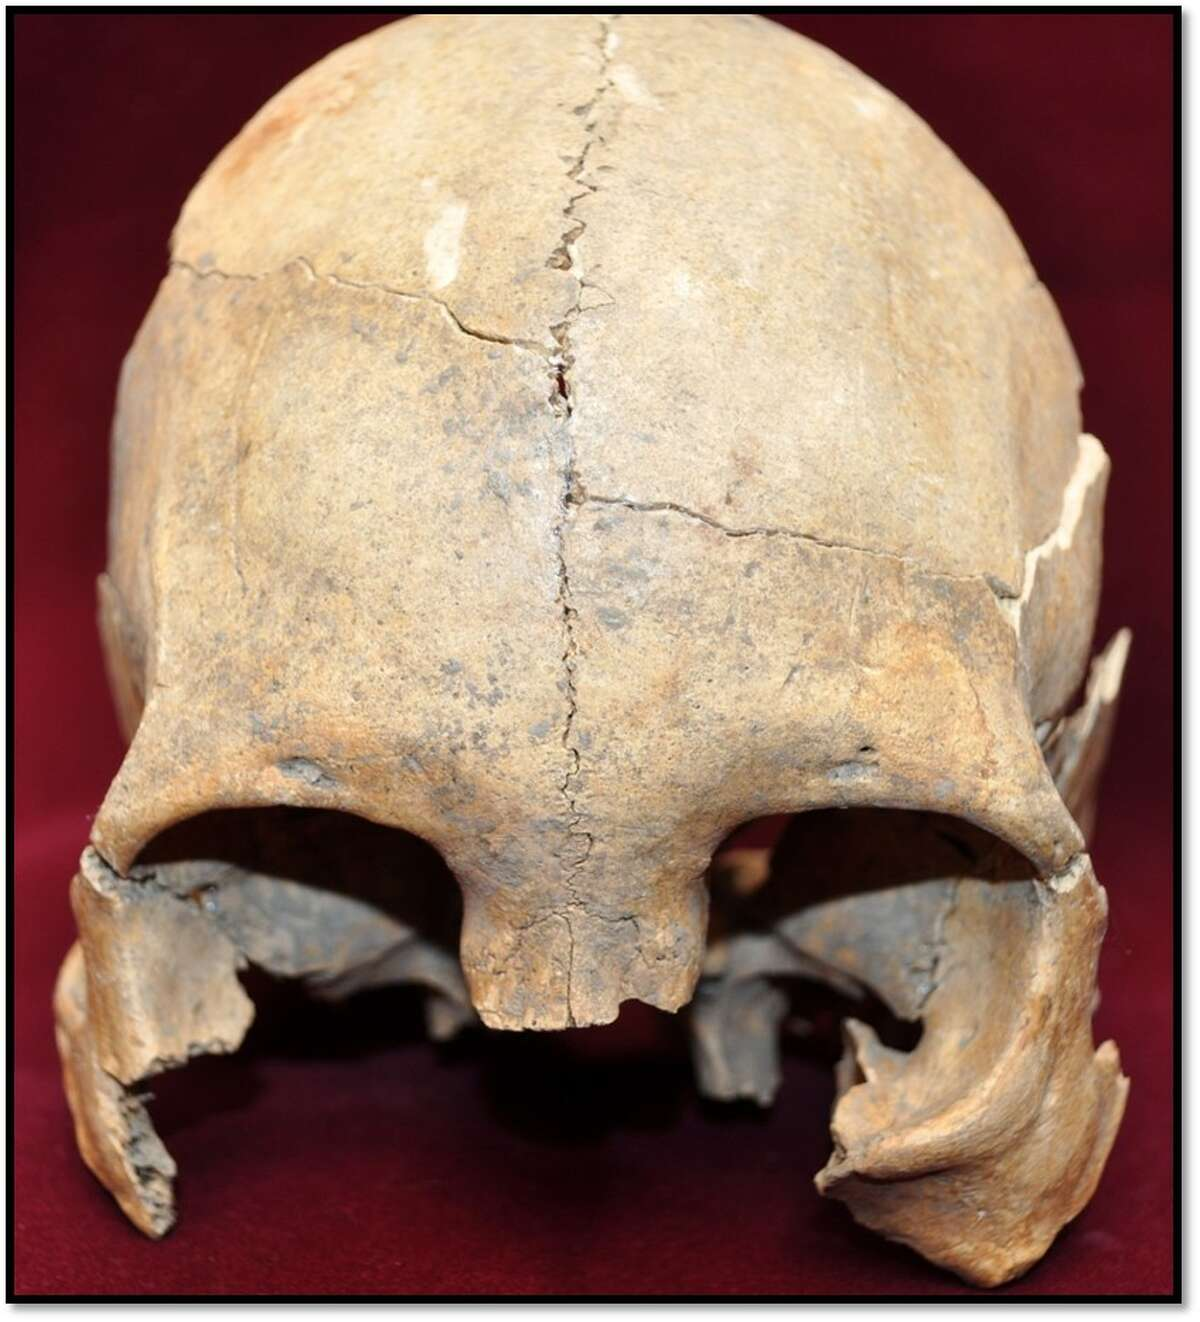 This adult female's skull had some mild cranial modifications to change the shape of her head.